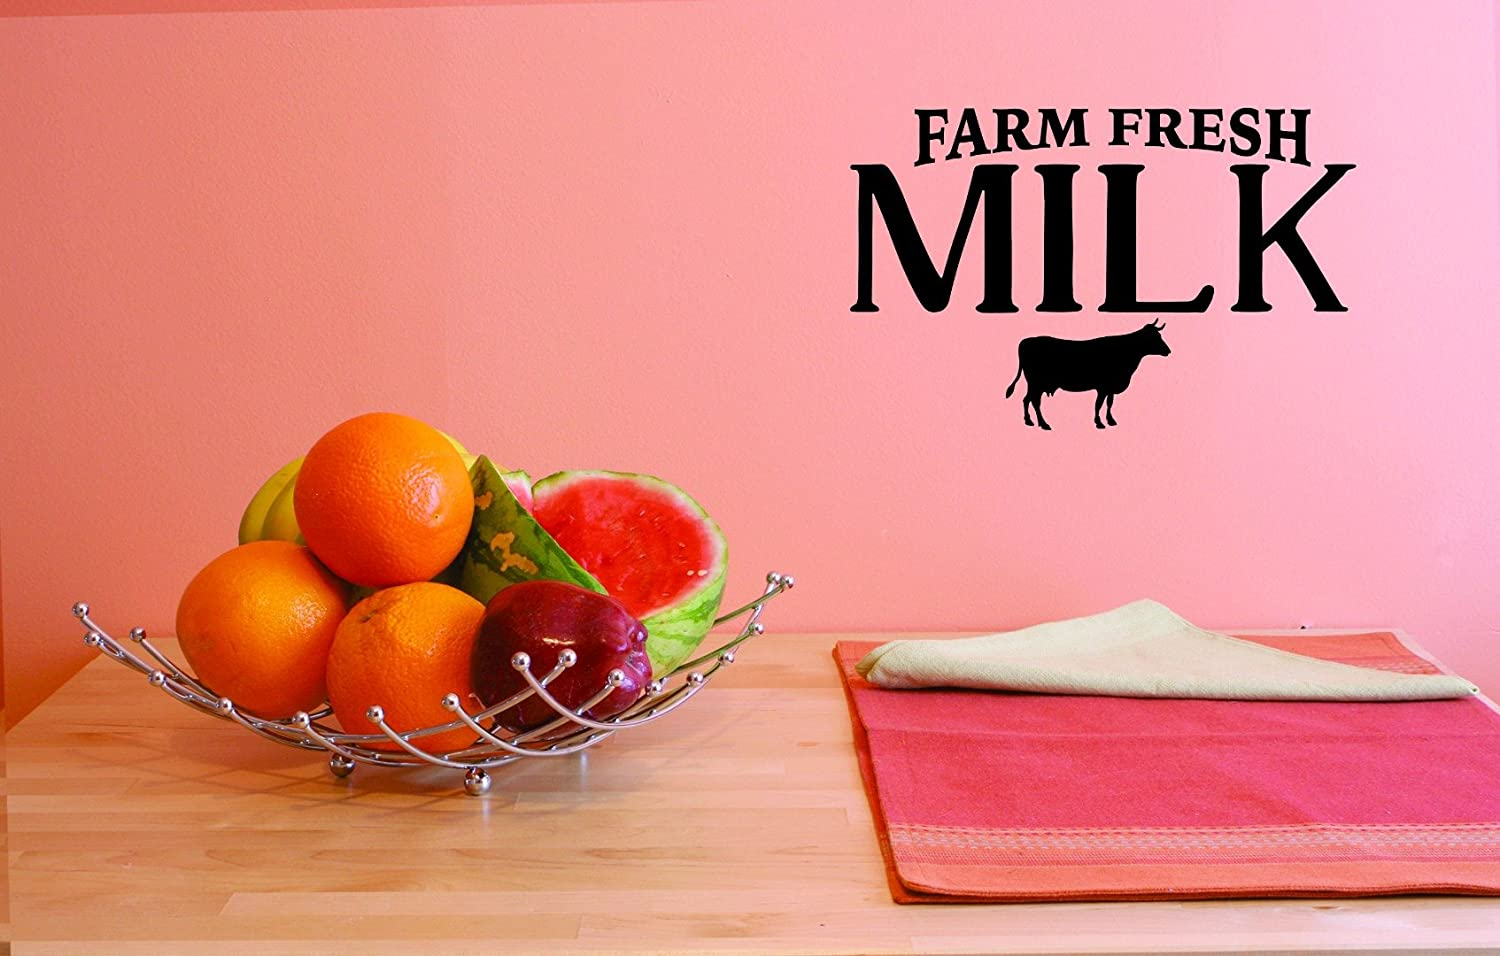 Design with Vinyl JER 1822 1 Hot New Decals Farm Fresh Milk Wall Art Size Black 10 x 20, 10 Inches x 20 Inches Color